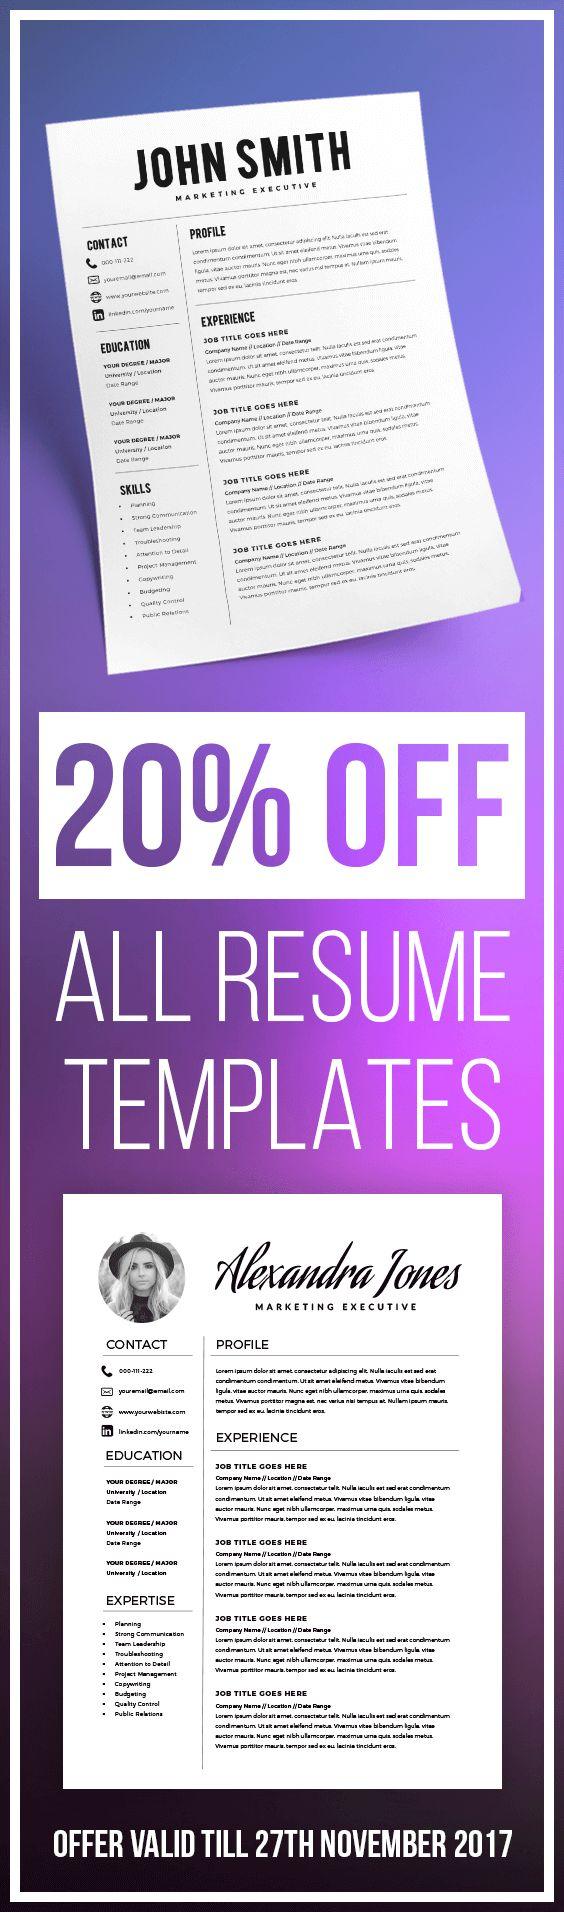 20% OFF ALL RESUME TEMPLATES - Resume Template - Resume Builder - CV Template - Cover Letter - MS Word on Mac / PC - Sample - Best Resume Templates - Instant Download